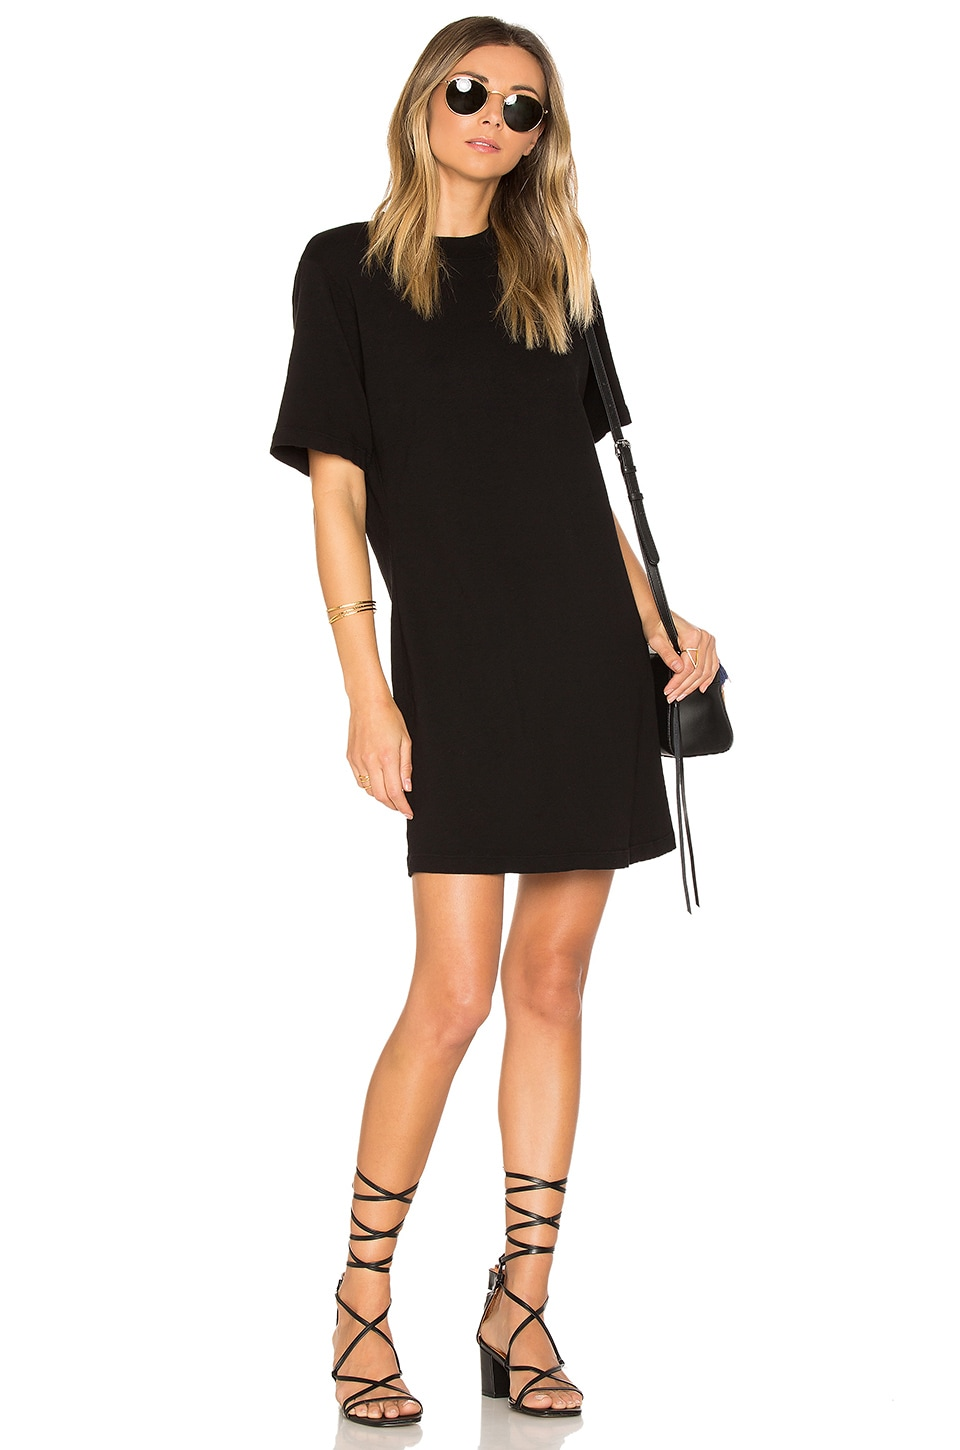 COTTON CITIZEN The Tokyo Mini Dress in Jet Black